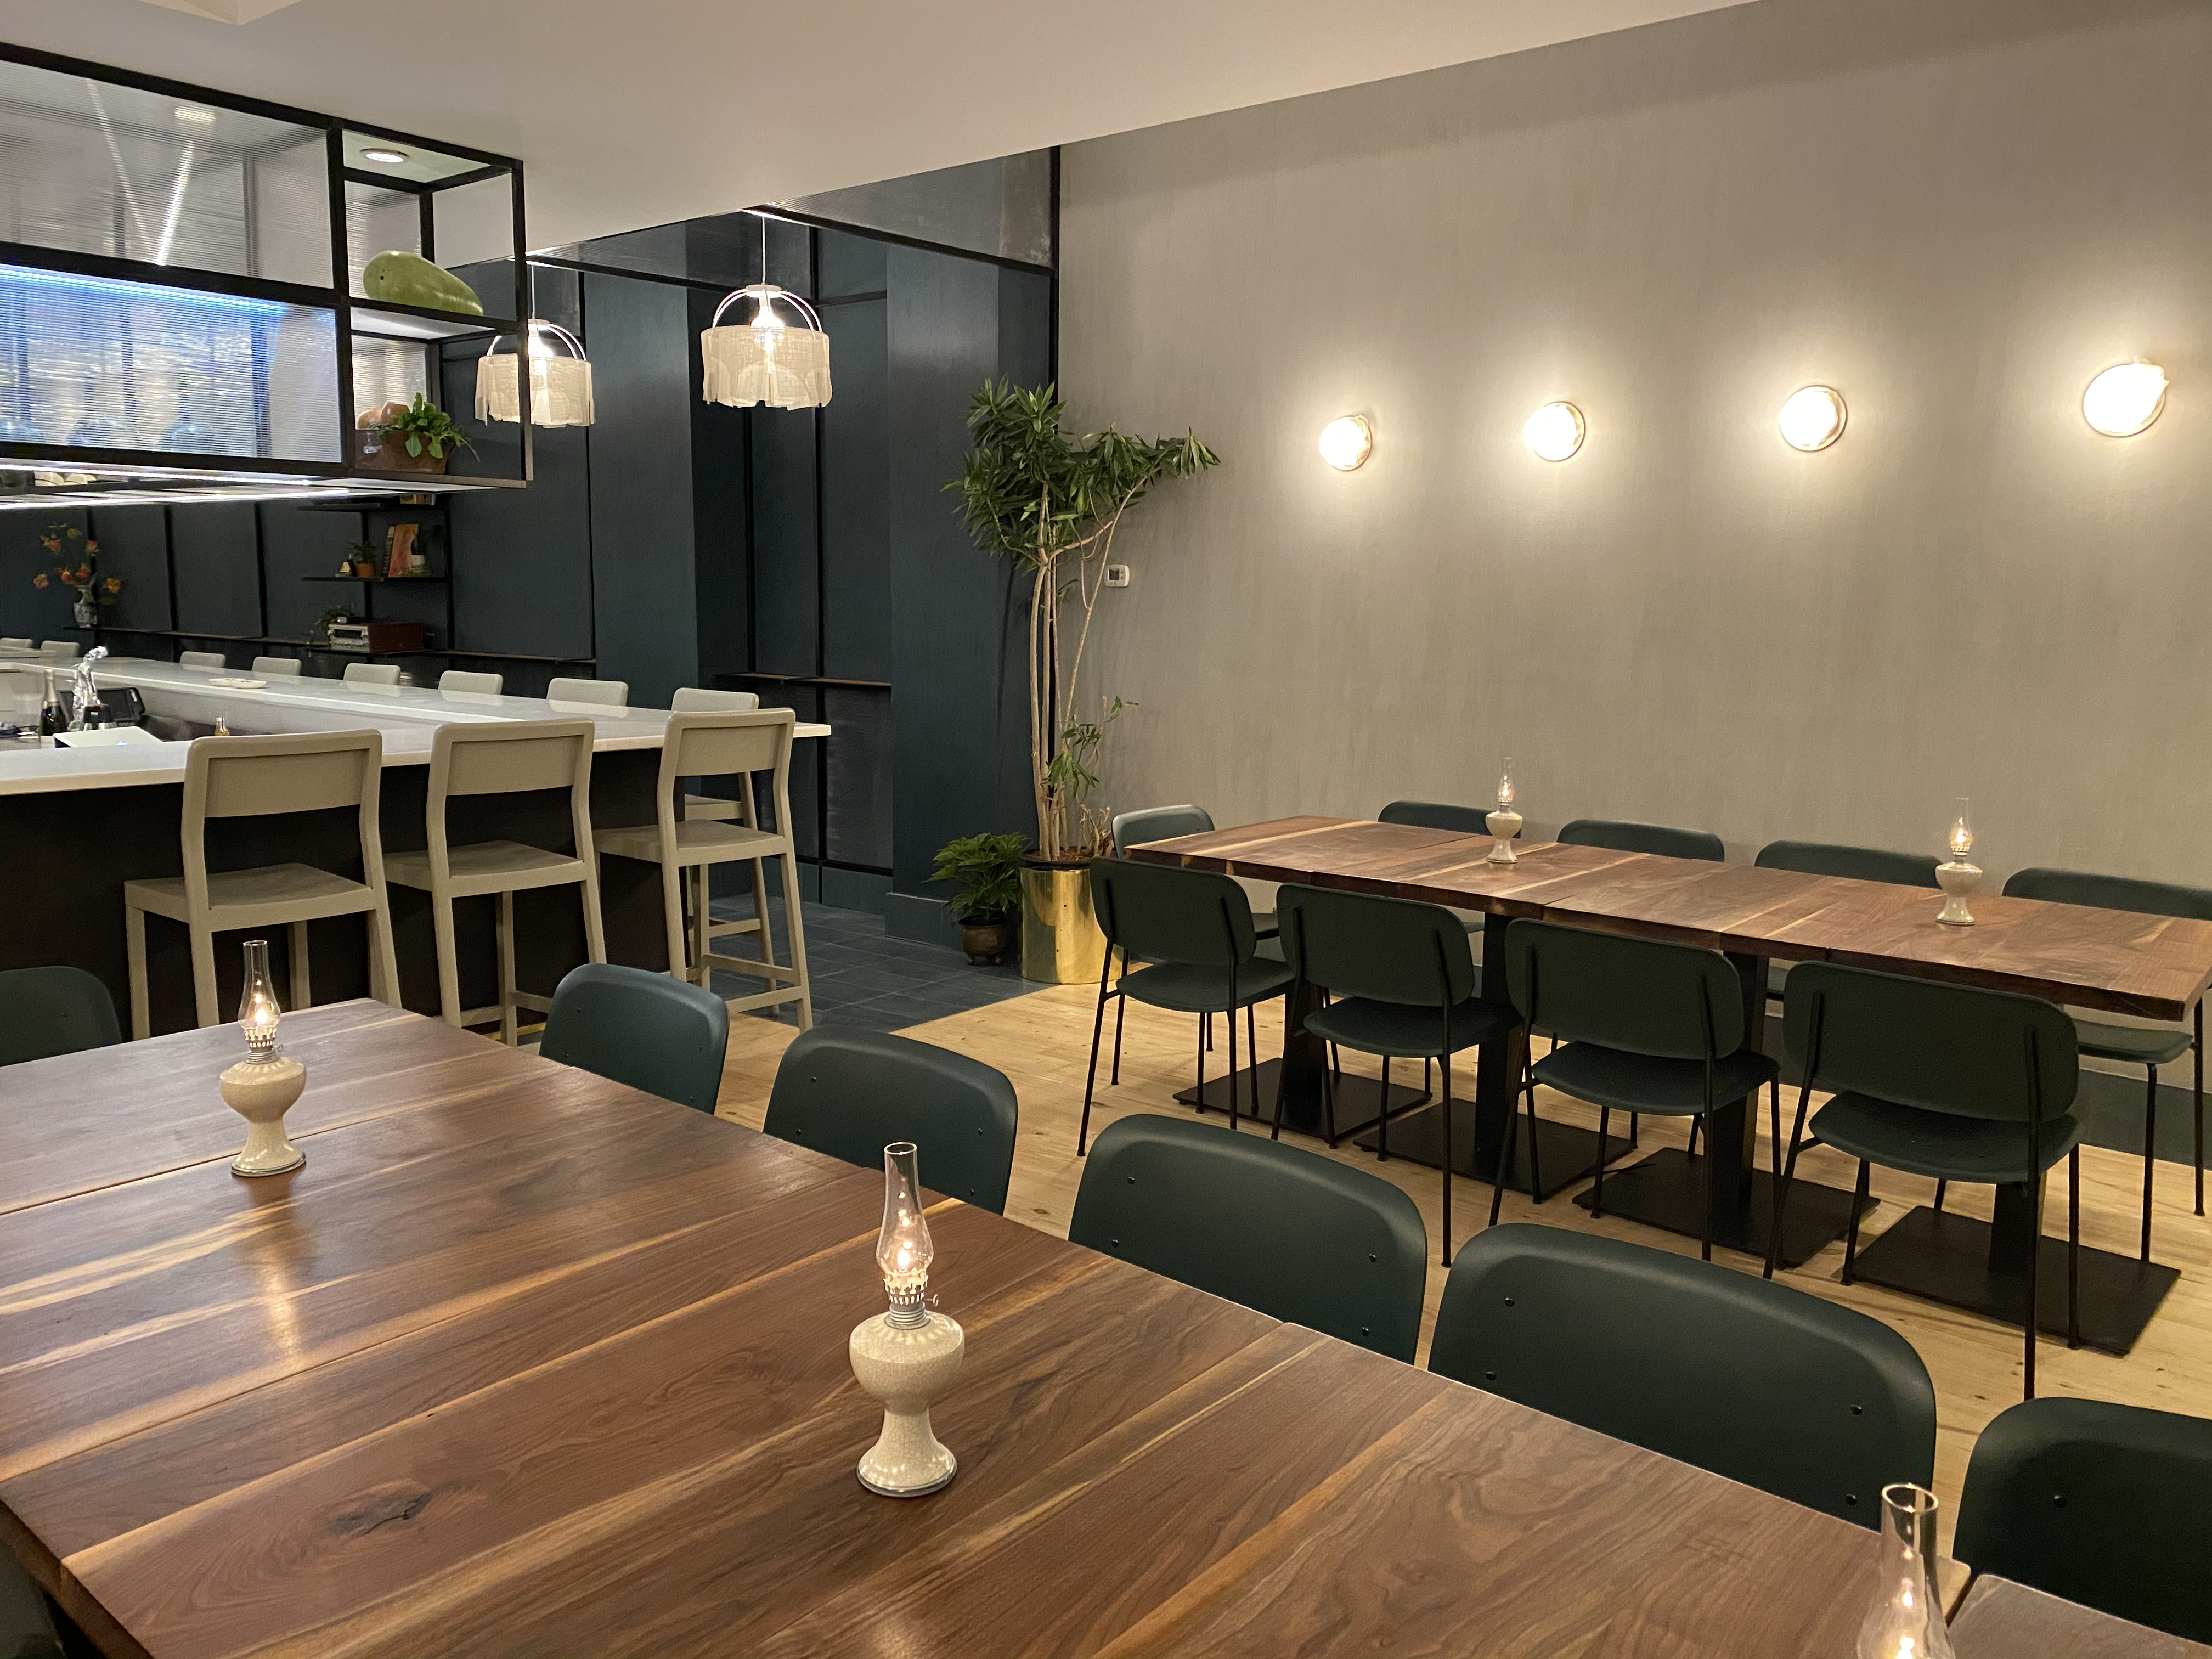 Two wooden tables and a bar with white seats. There are small lamps on each table and exposed bulbs on the wall.